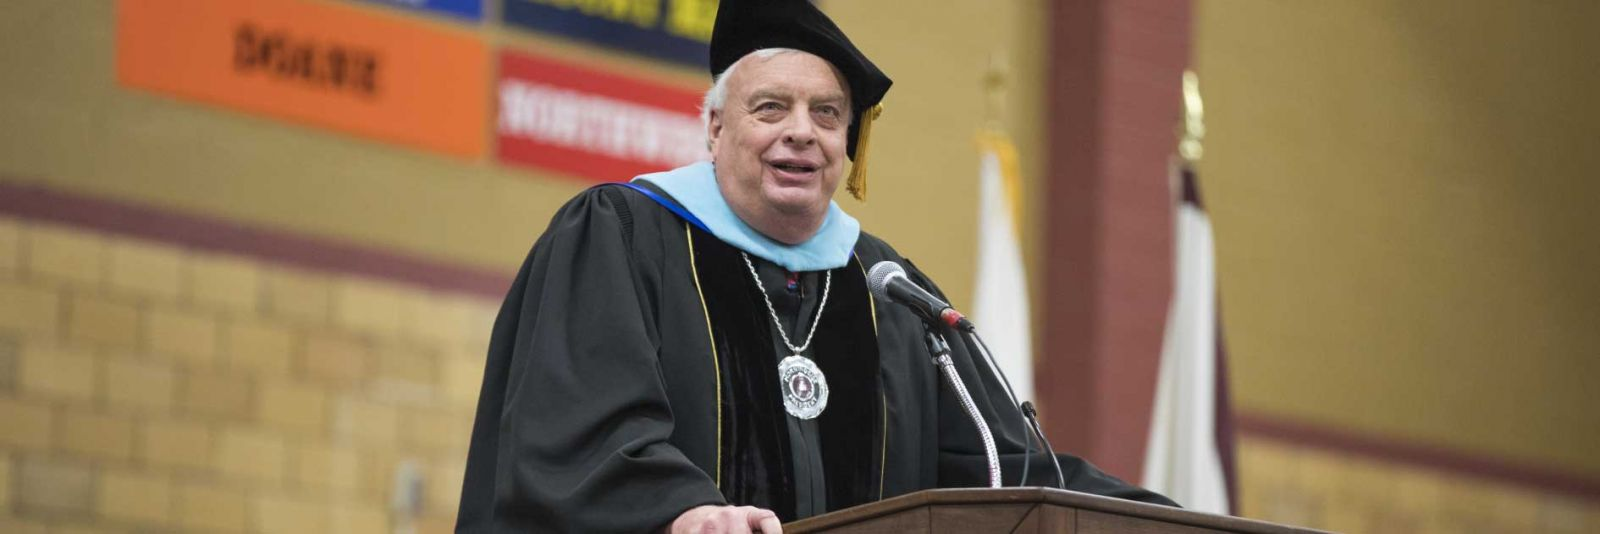 president Reynders speaking at commencement